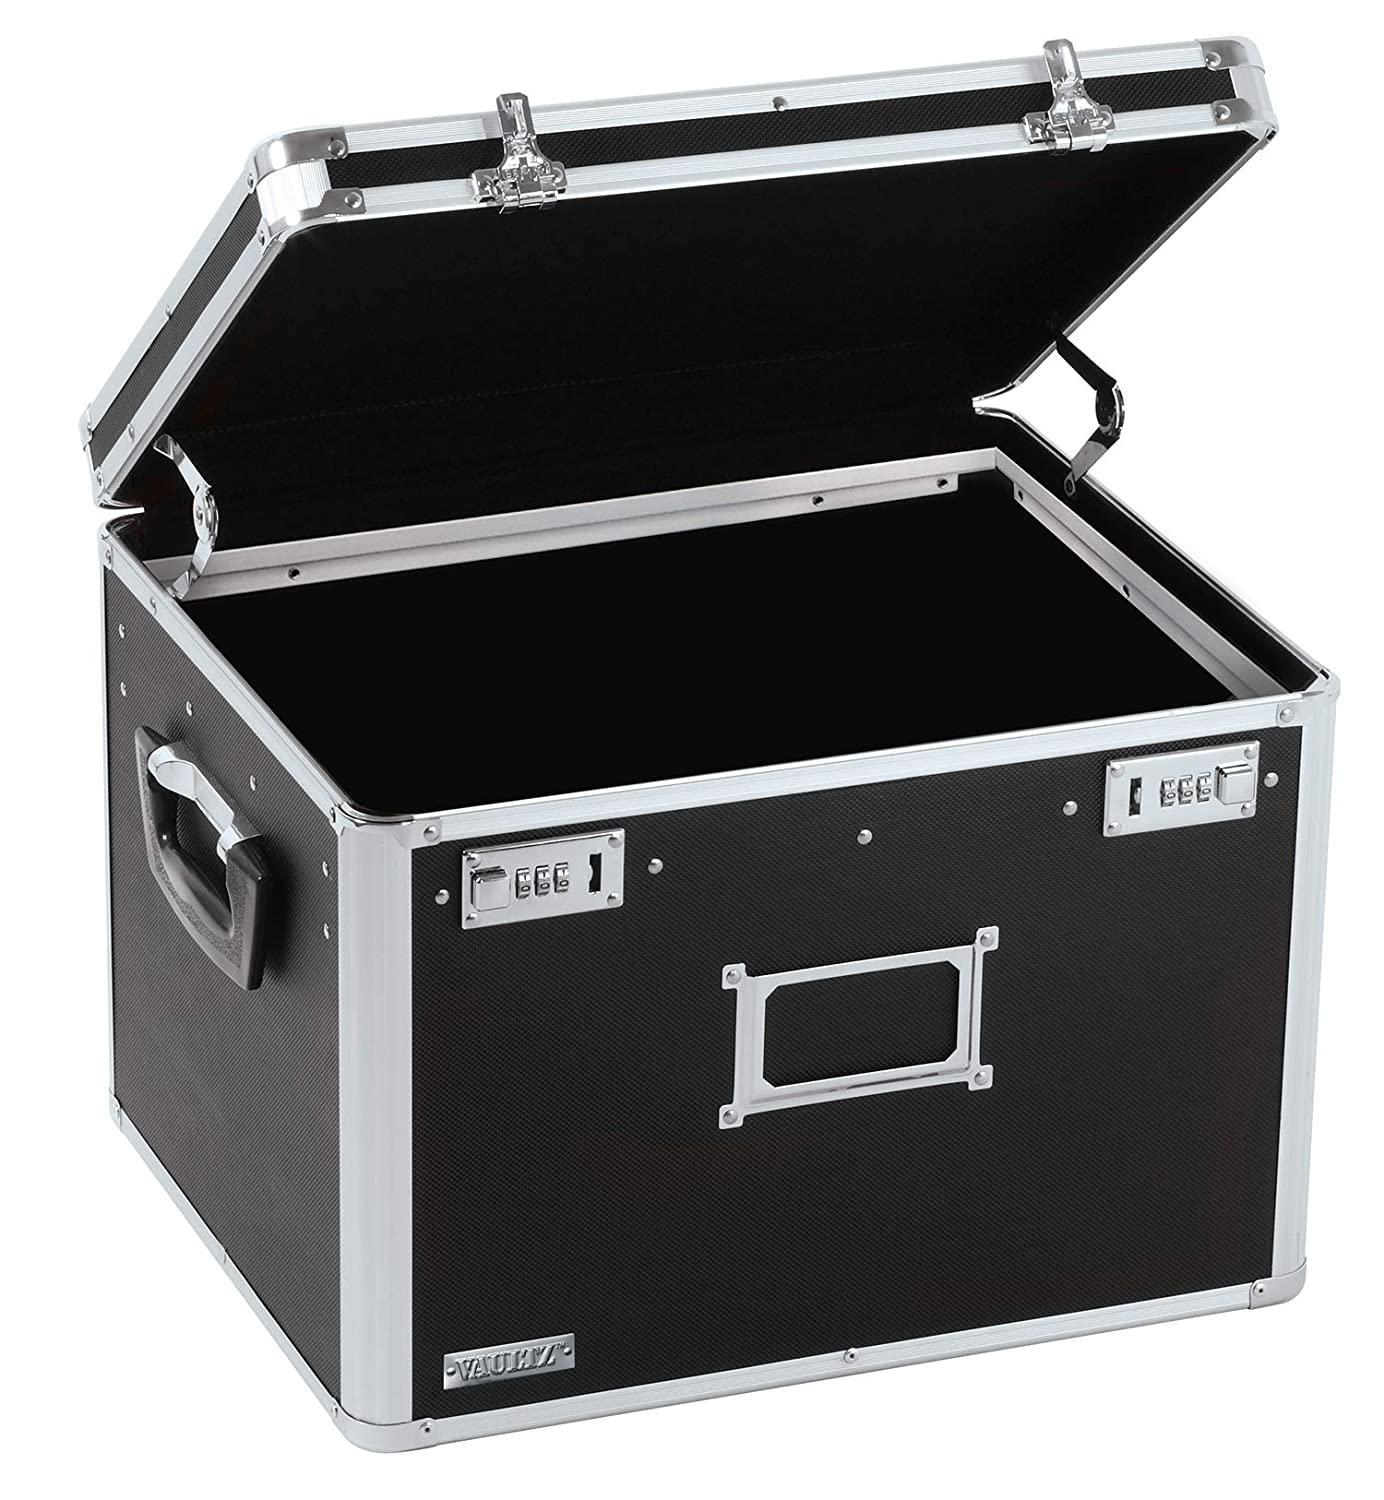 Vaultz Locking File Storage Chest, Two-Handled, Letter/Legal File Storage, 17 1/2 W x 14 D x 12 1/2 H Inches, Black (VZ01008)